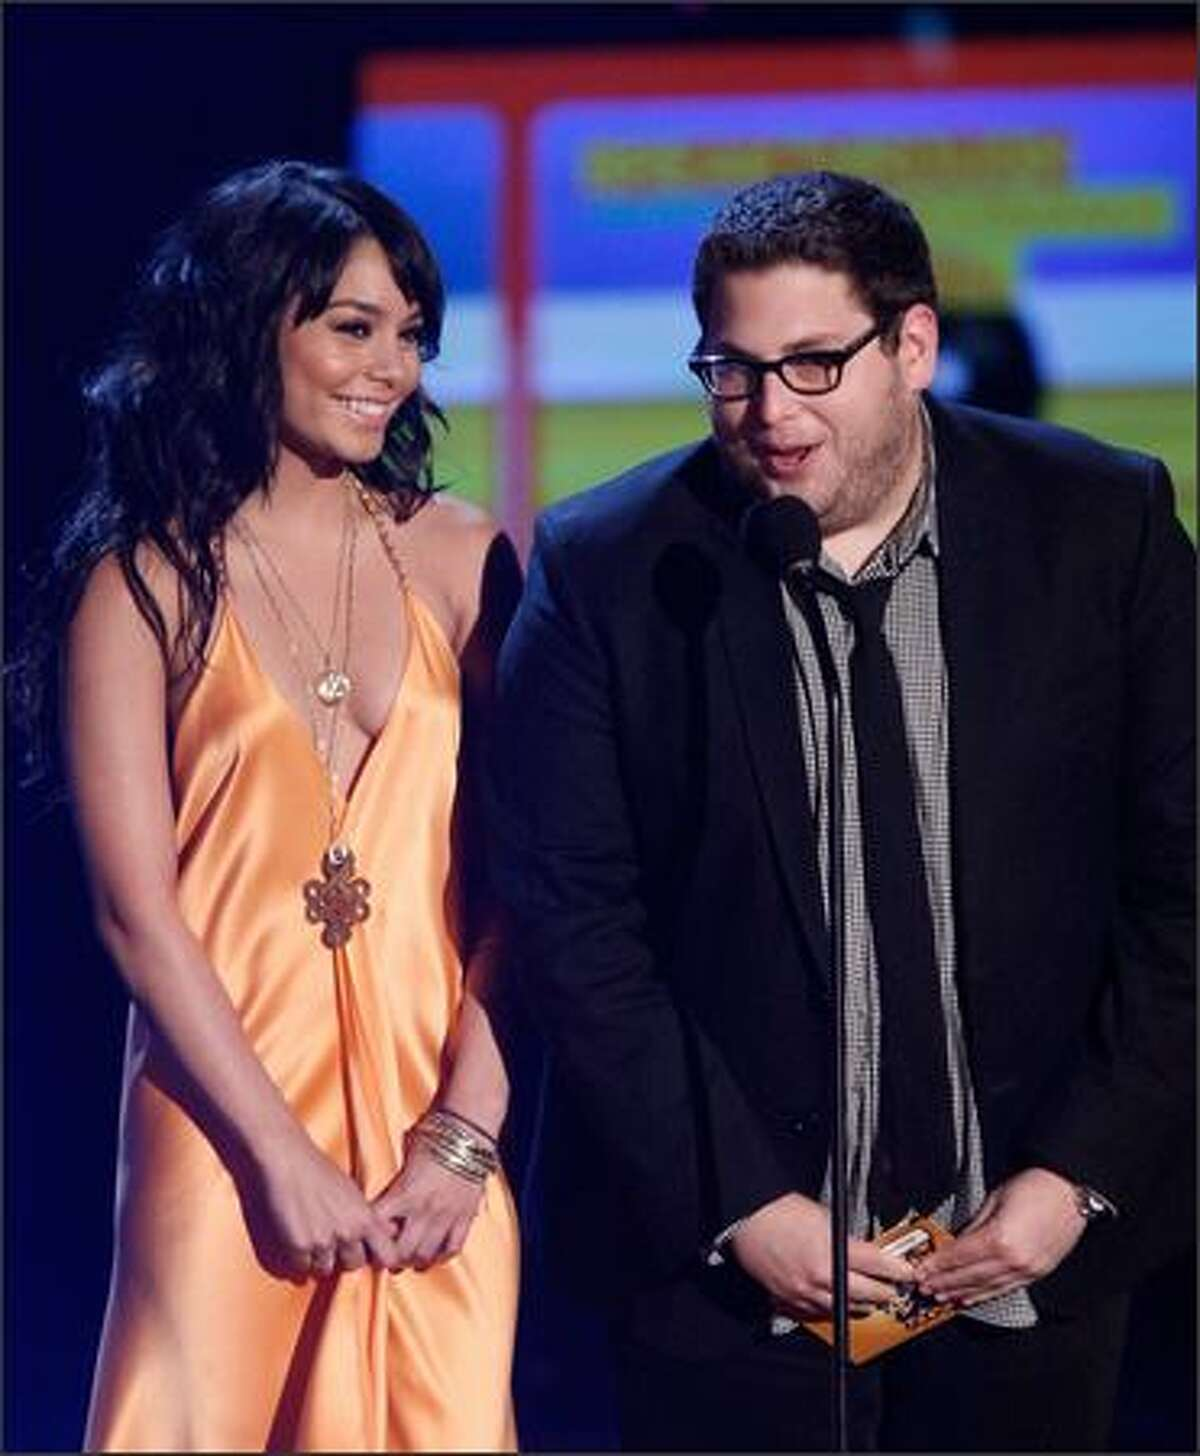 Actress Vanessa Hudgens, left, and actor Jonah Hill present the Breakthrough Male Performance award onstage during the 18th Annual MTV Movie Awards held at the Gibson Amphitheatre on Sunday in Universal City, Calif.